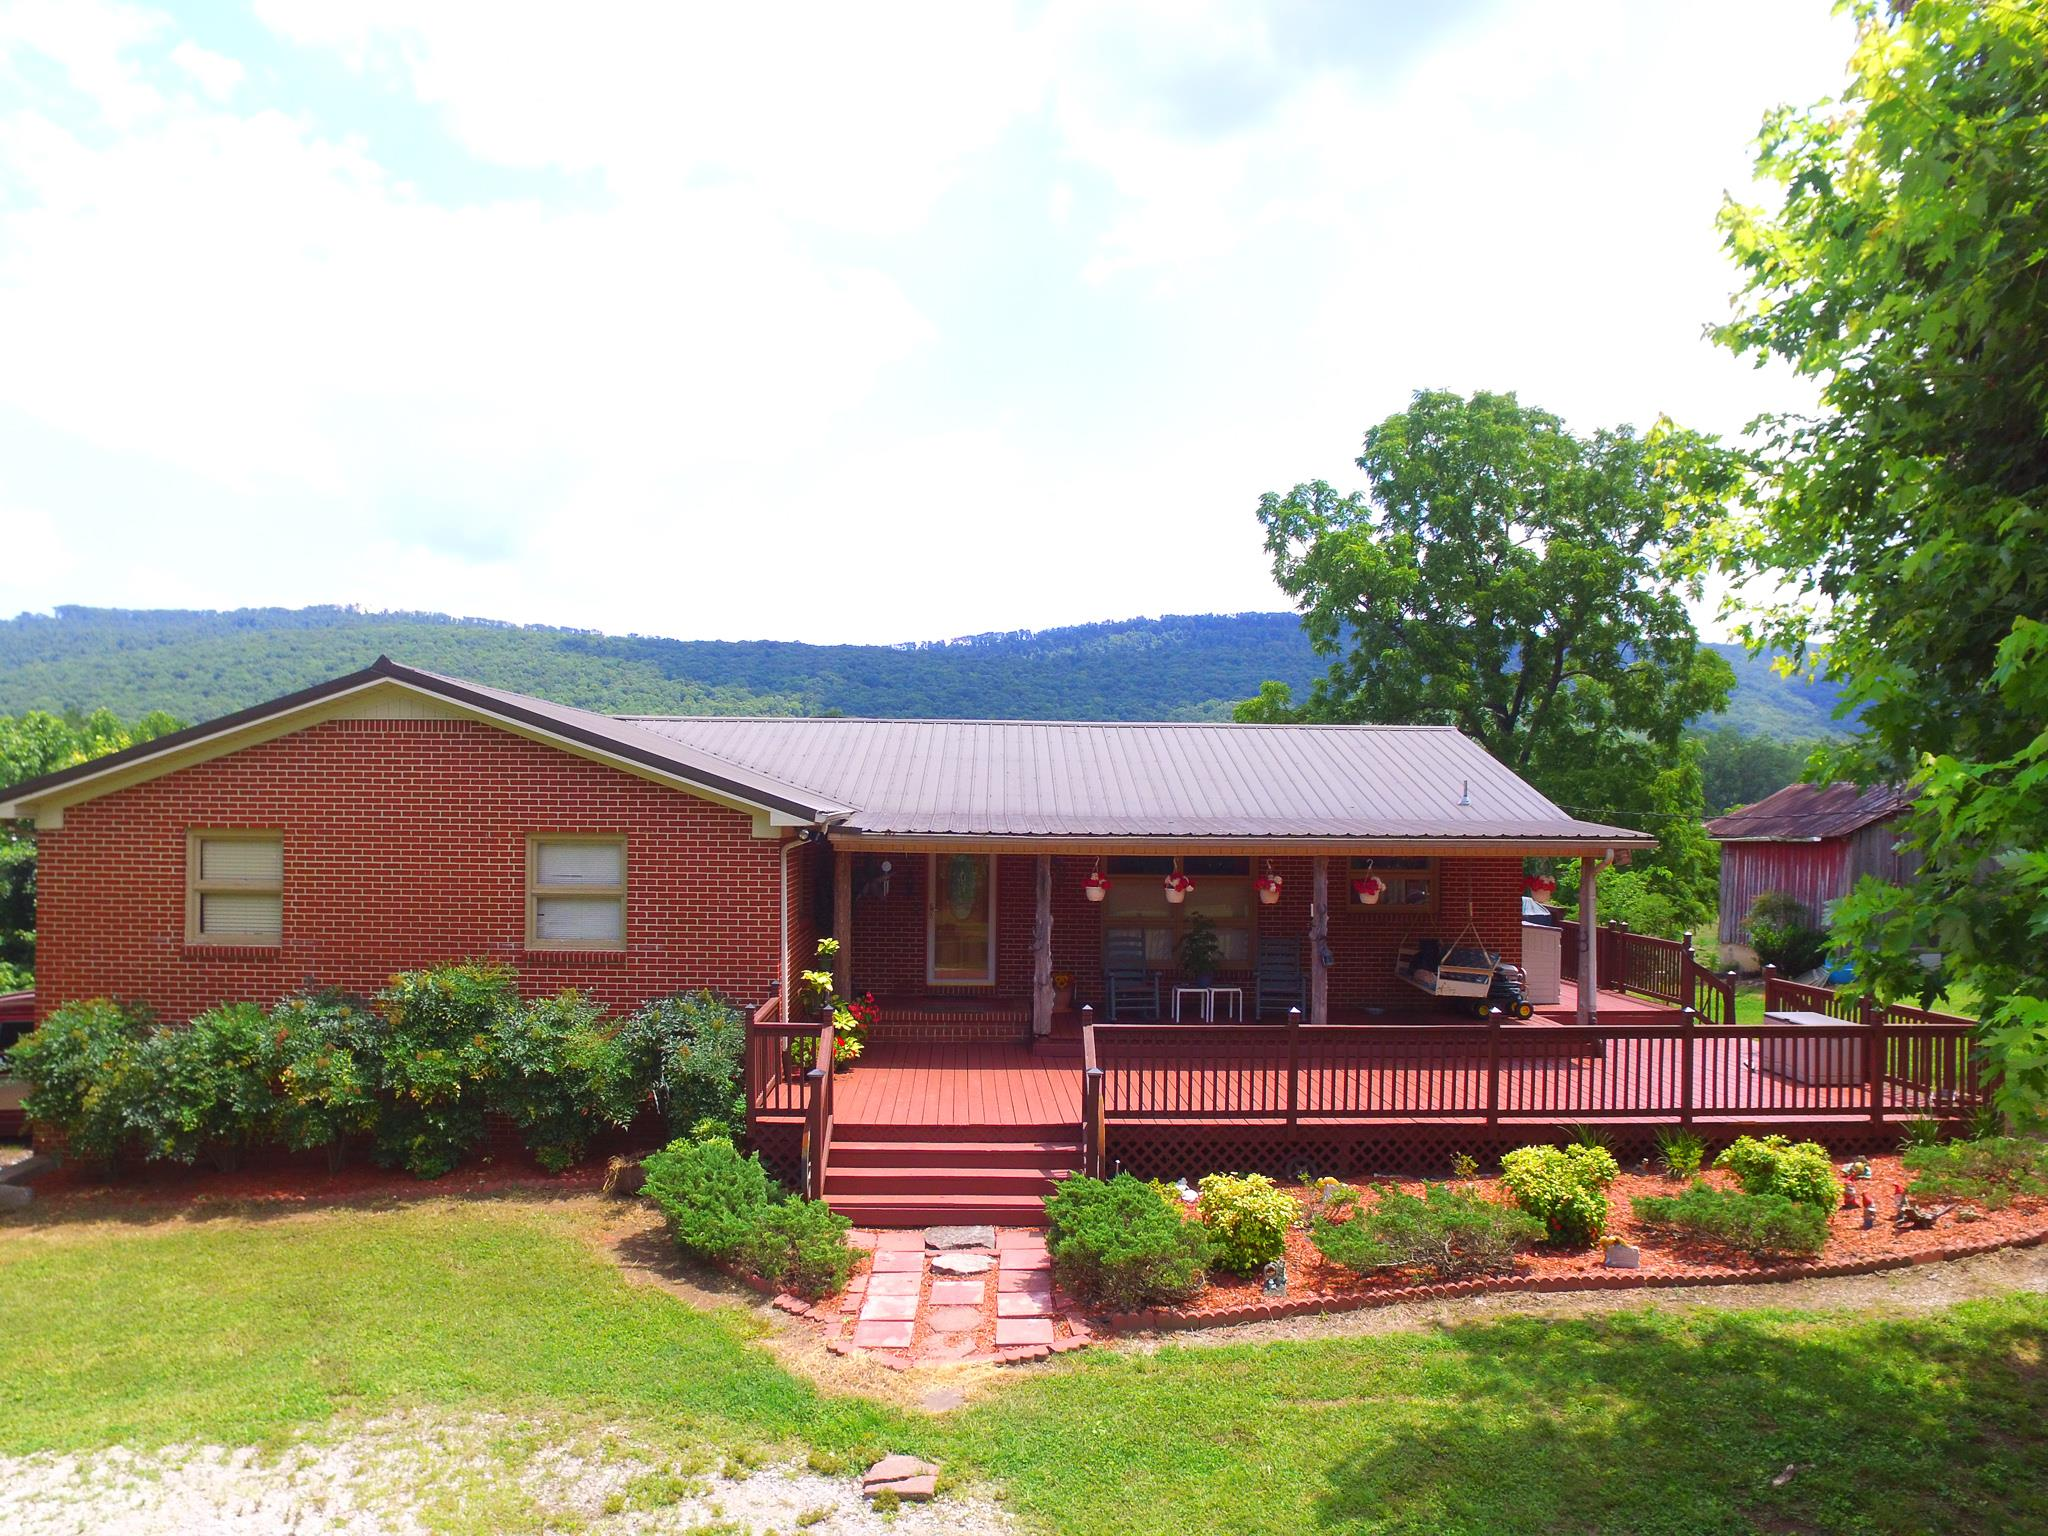 2541 Chestnut Grove Rd, Morrison, TN 37357 - Morrison, TN real estate listing